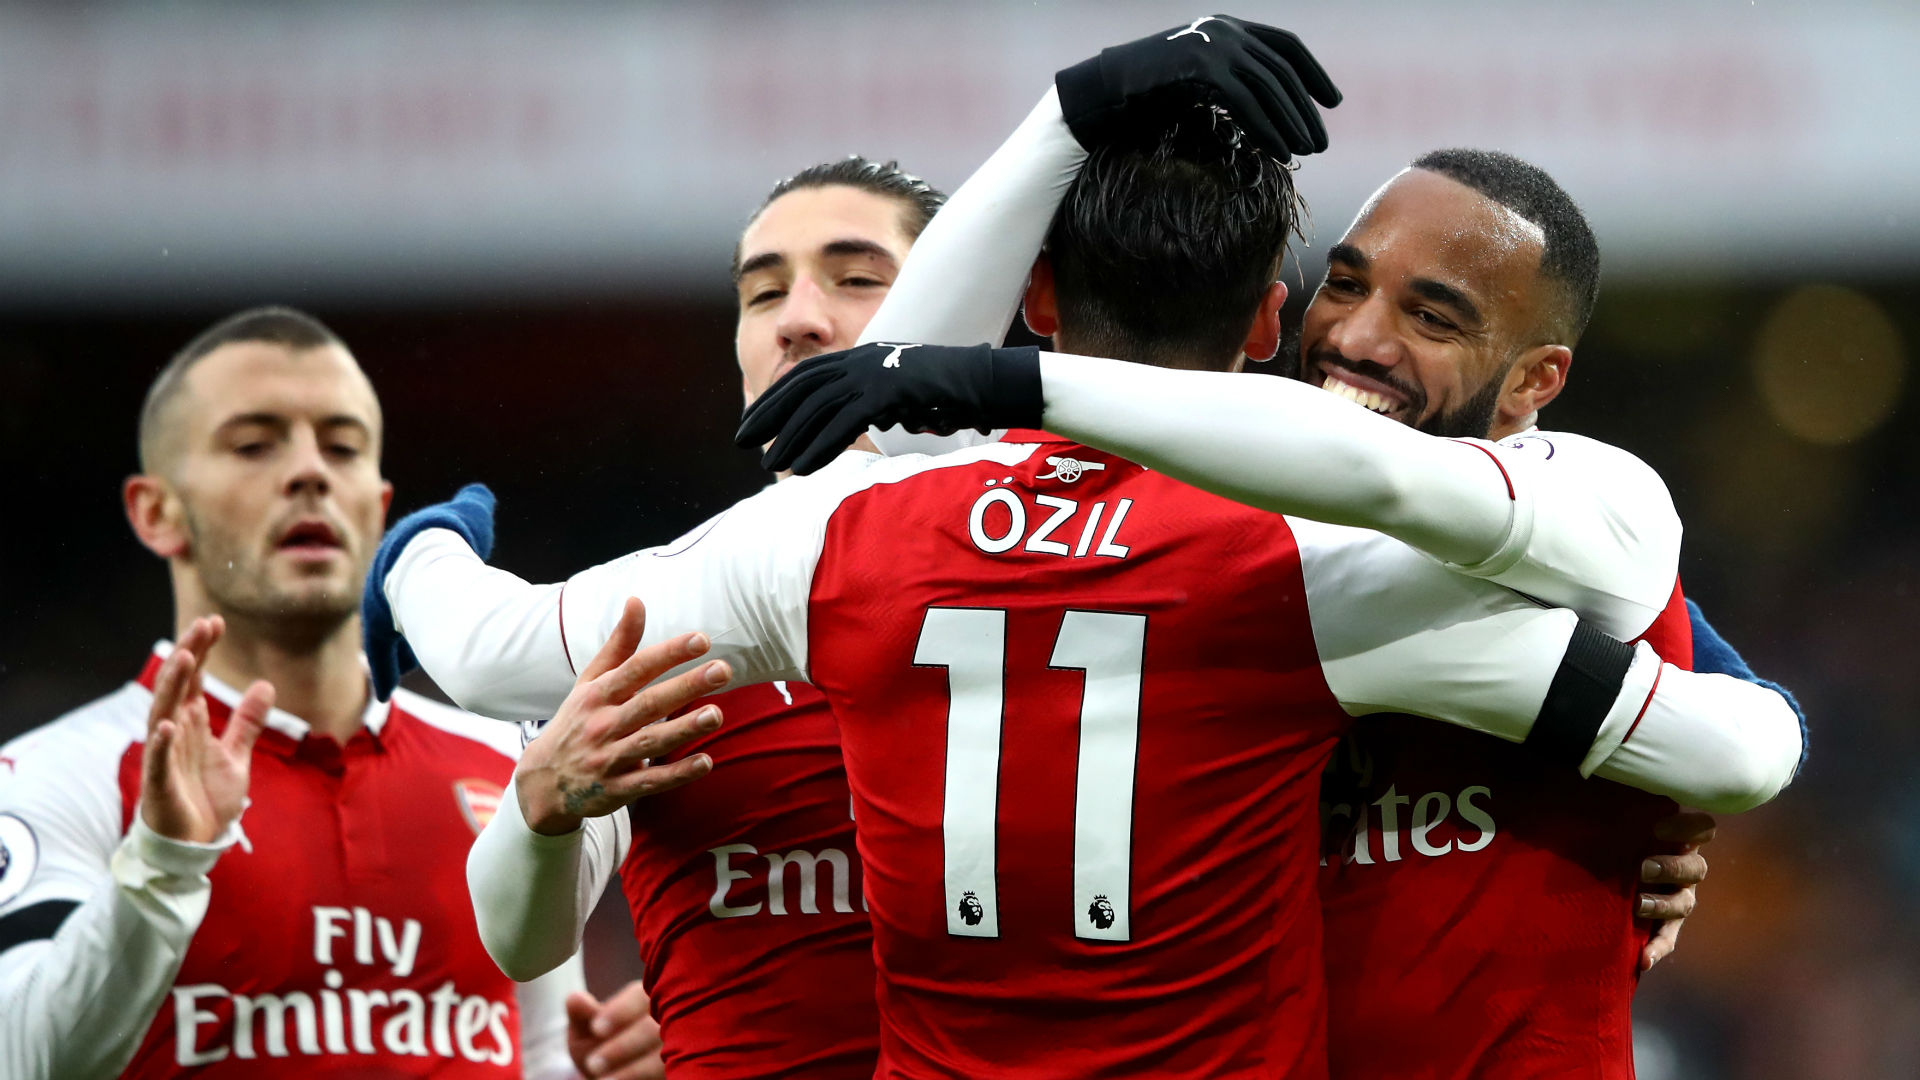 Rampant Arsenal put four past Palace to end winless run